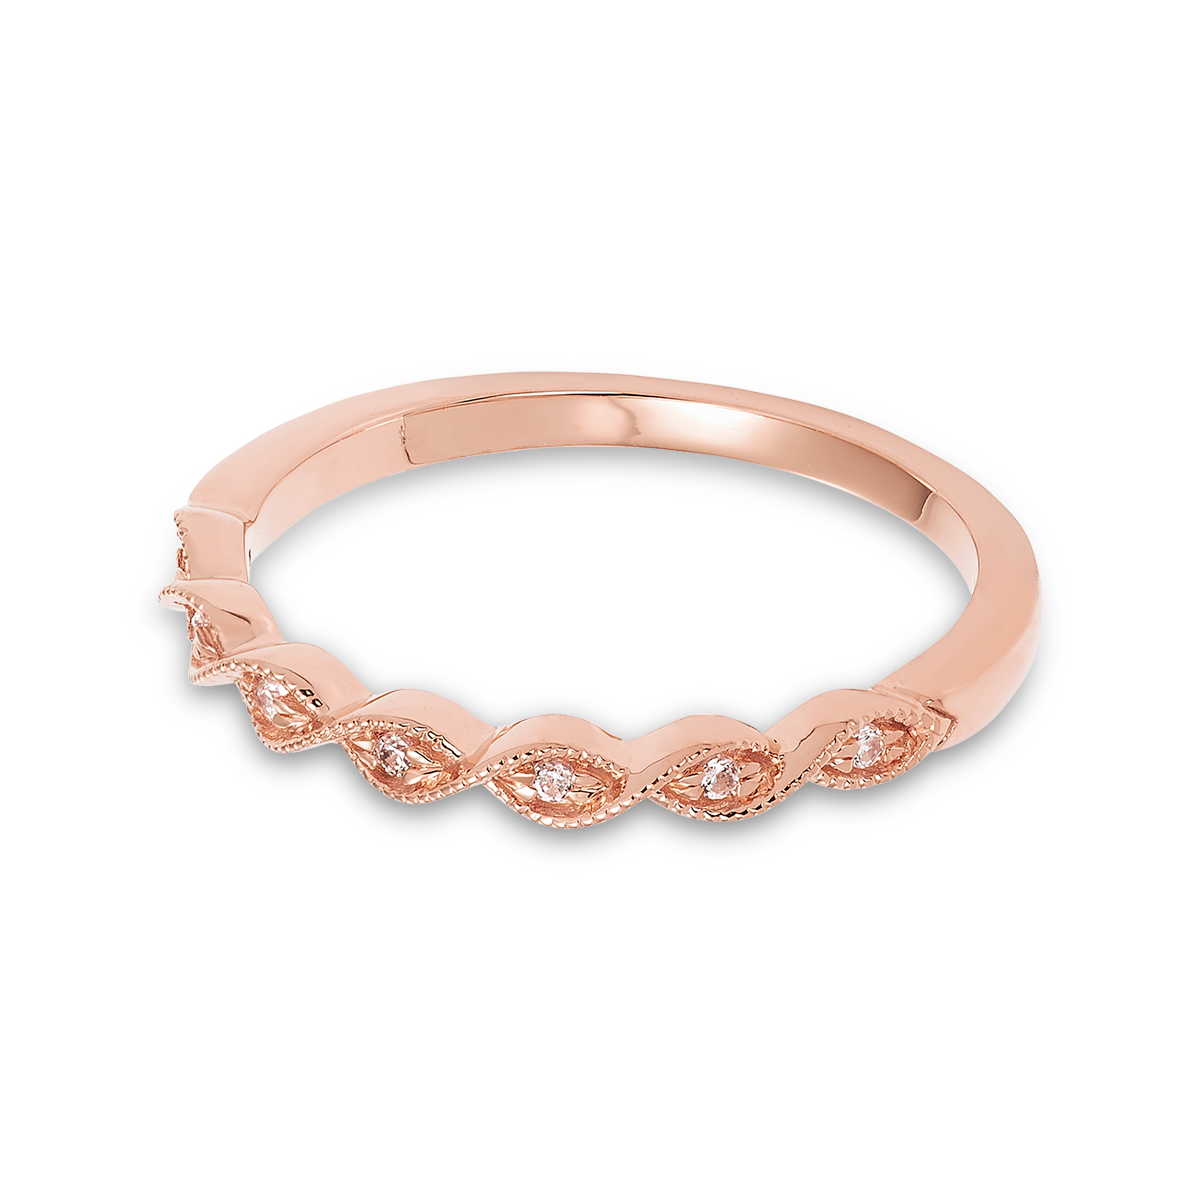 10K Rose Gold stacking band